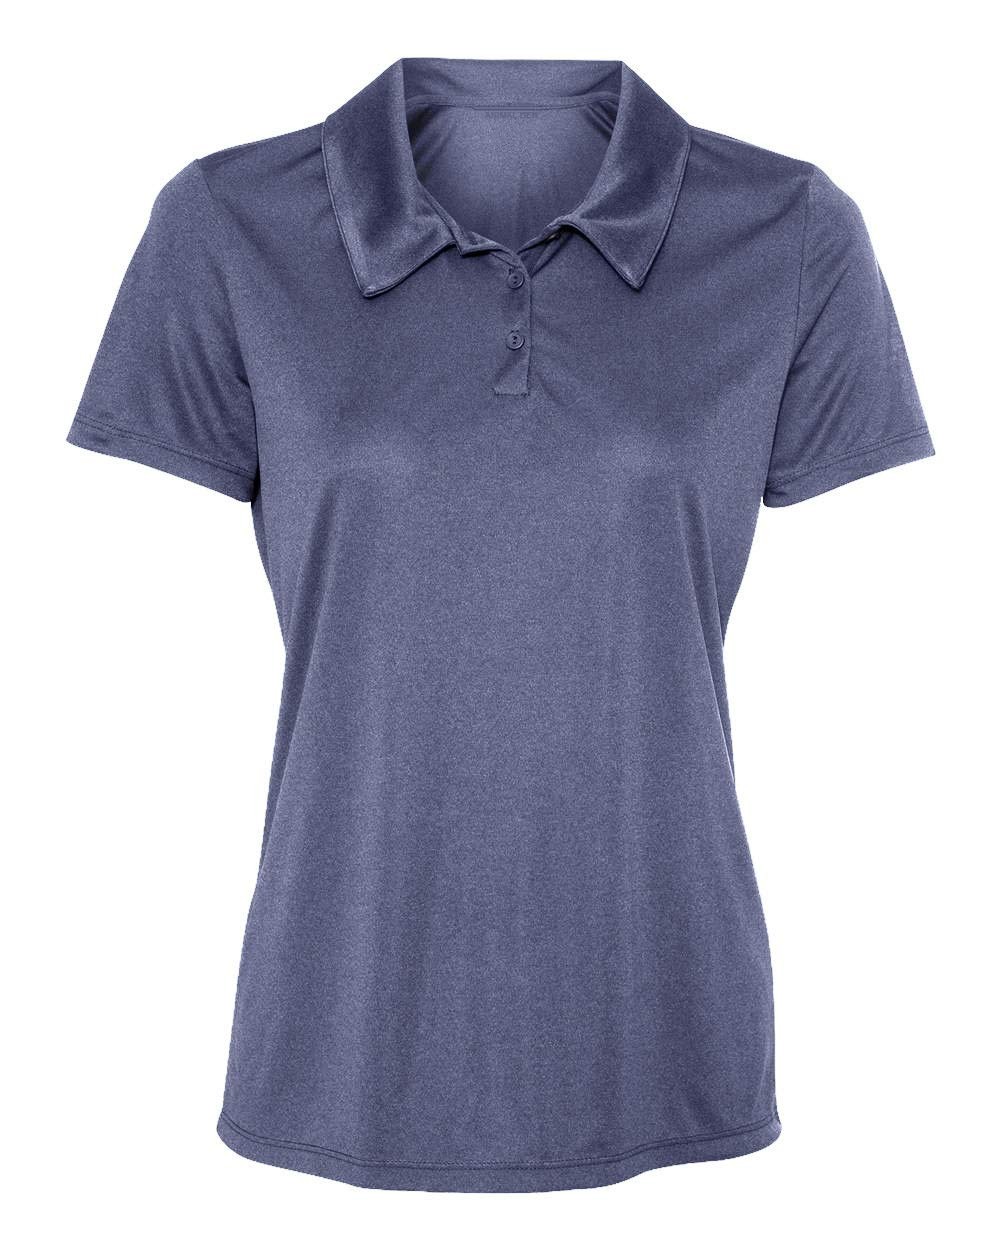 Animal Den Women's Dry-Fit Golf Polo Shirts 3-Button Golf Polo's in 20 Colors XS-3XL Shirt NV/HTH-XS